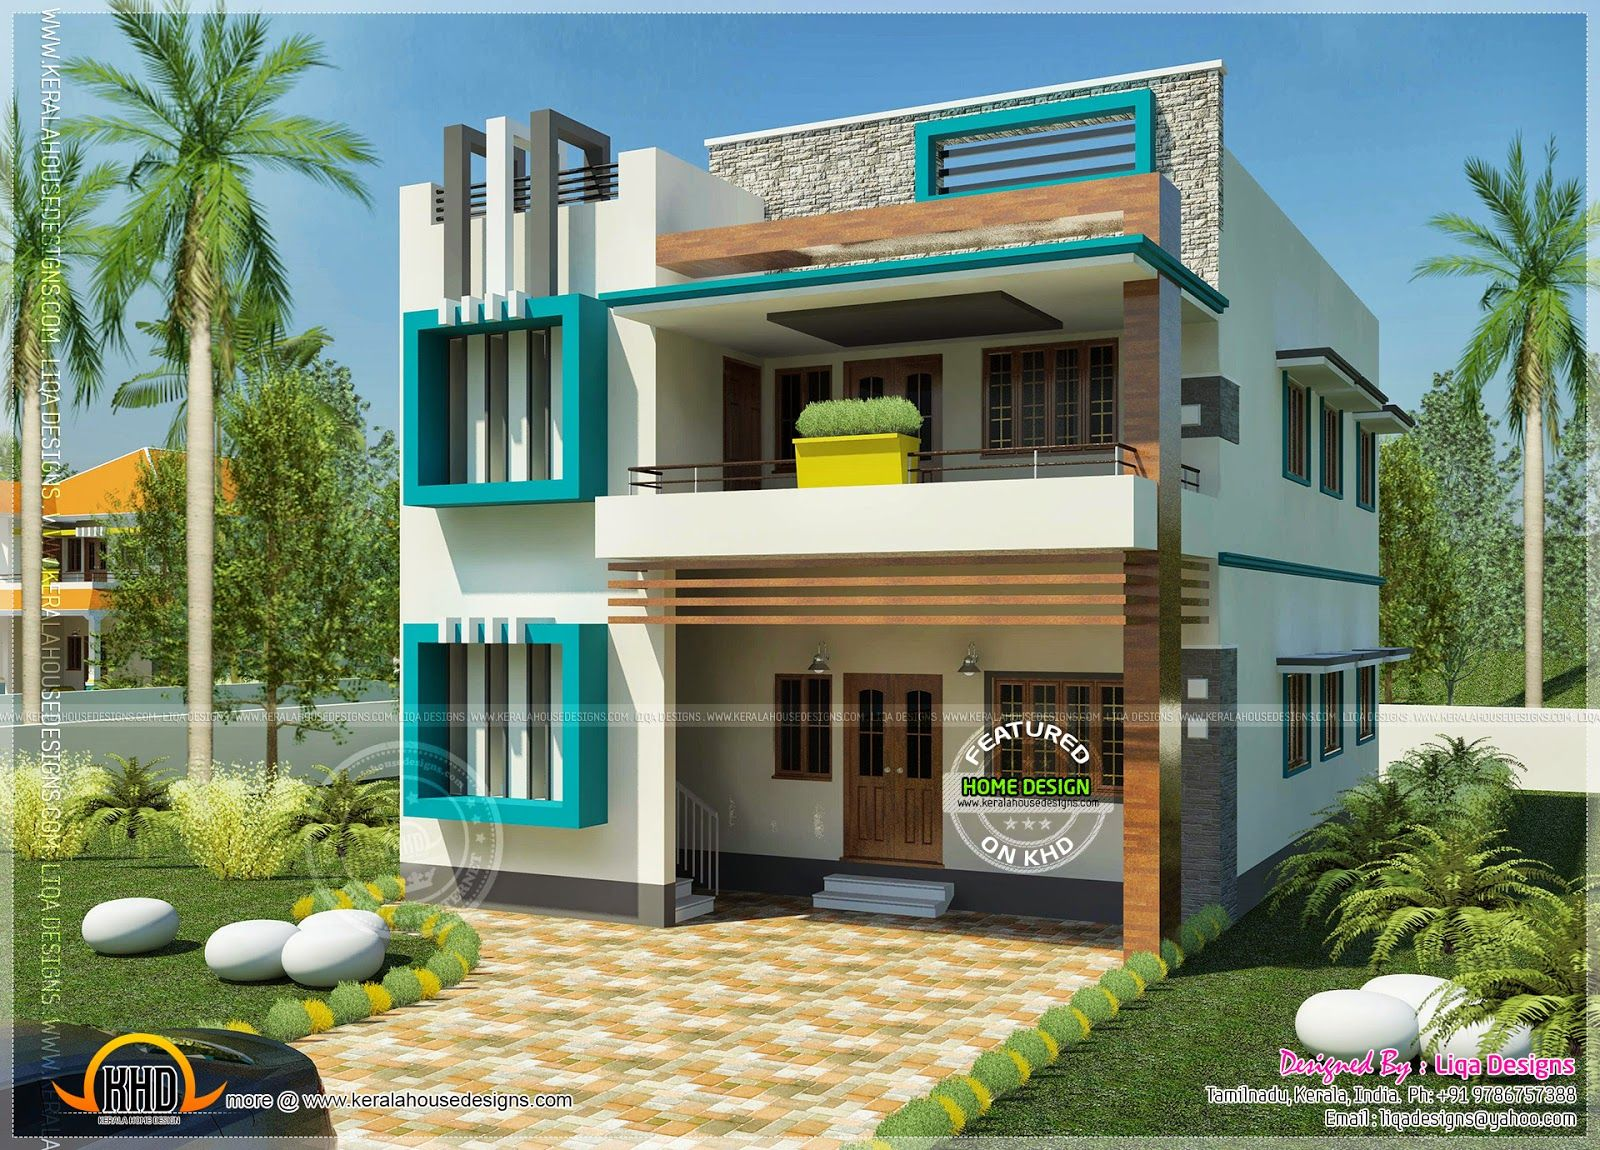 Home design house - Imposing Ideas Simple Home Design Modern Simple Indian House Classic Home Designs In India Gallery Imposing Ideas Simple Home Design Modern Simple Indian